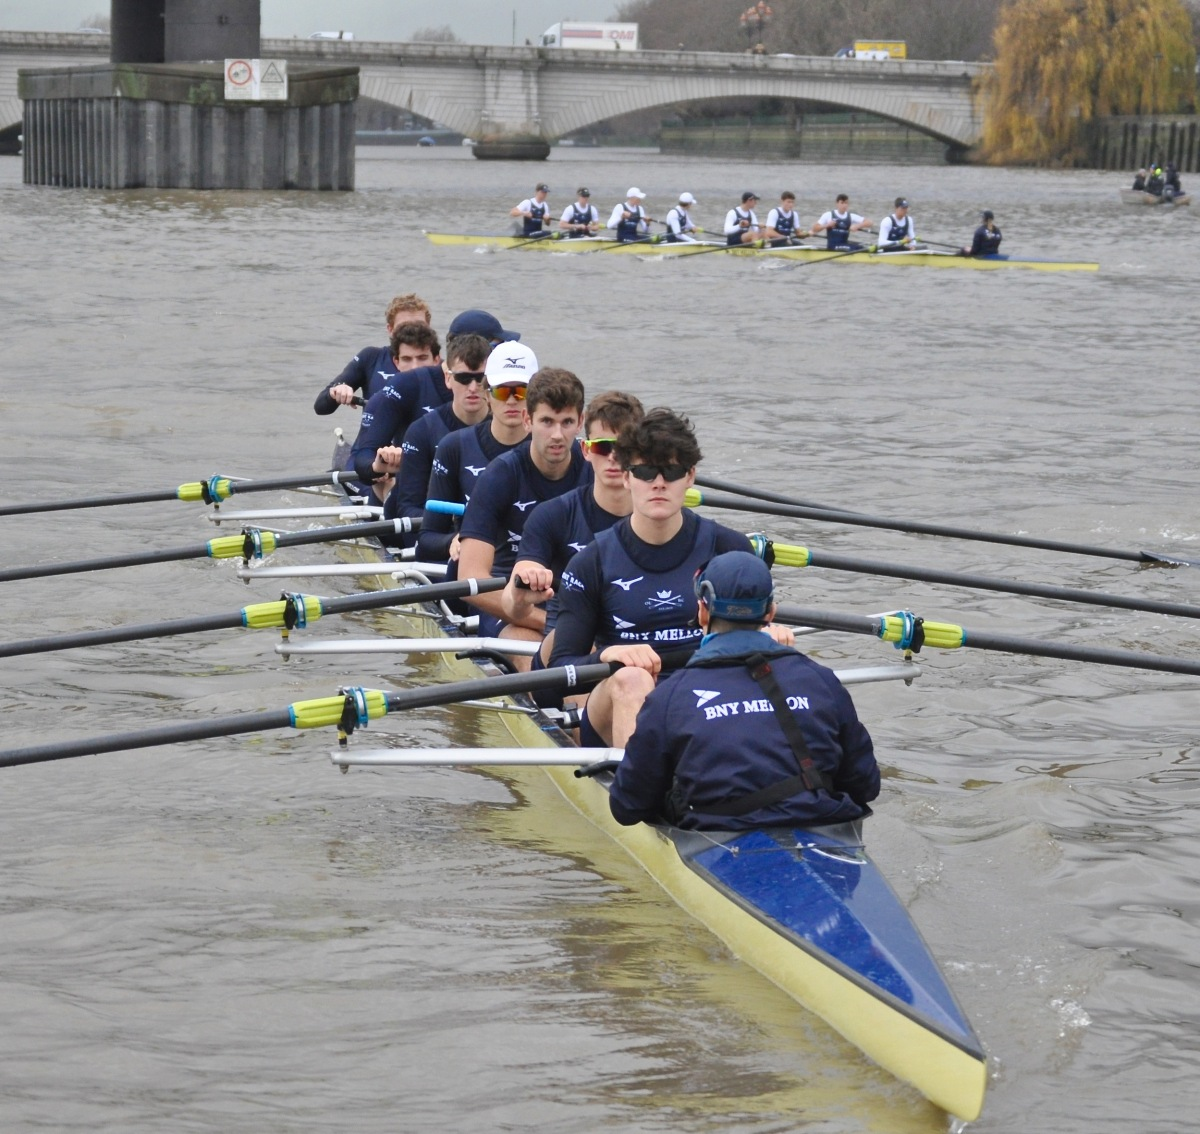 Oxford's Boat Race Trials: Flea Bites, Comet Soars